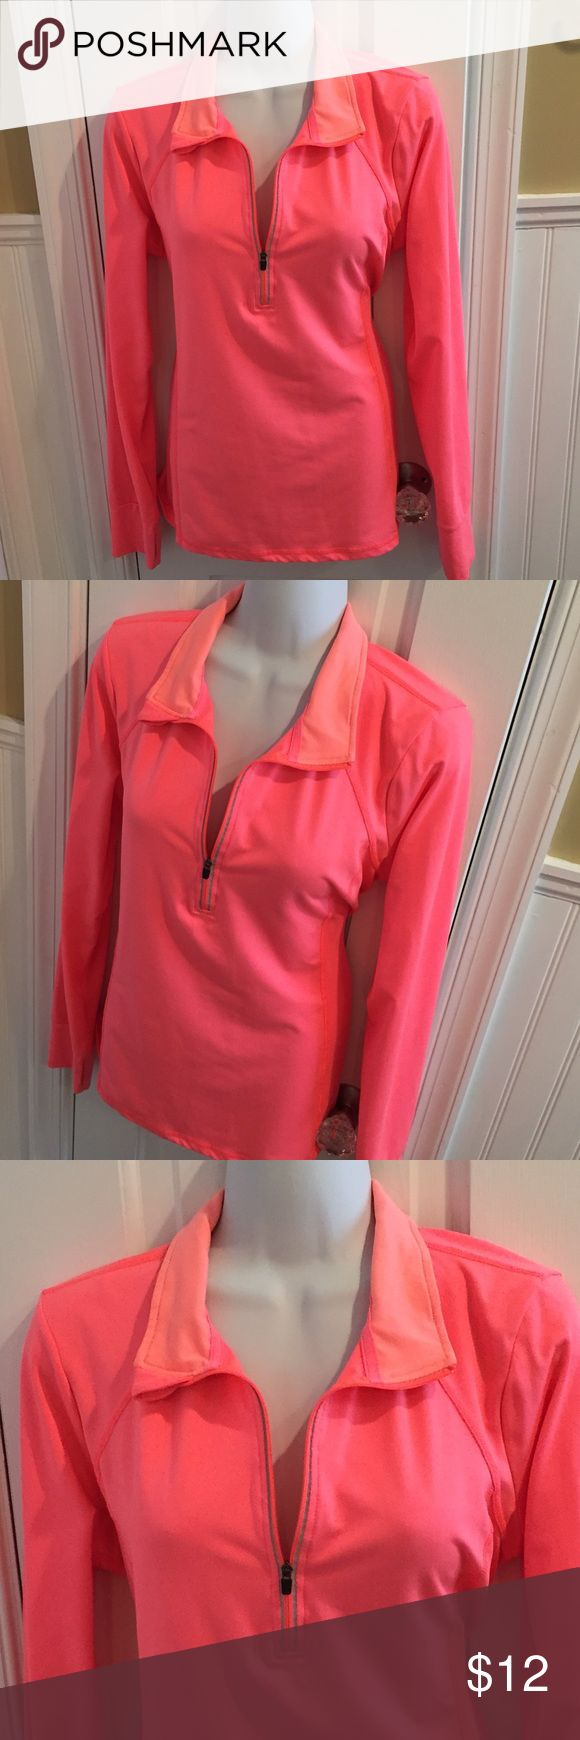 """Pink long sleeve top About 26"""" long Xersion Tops"""